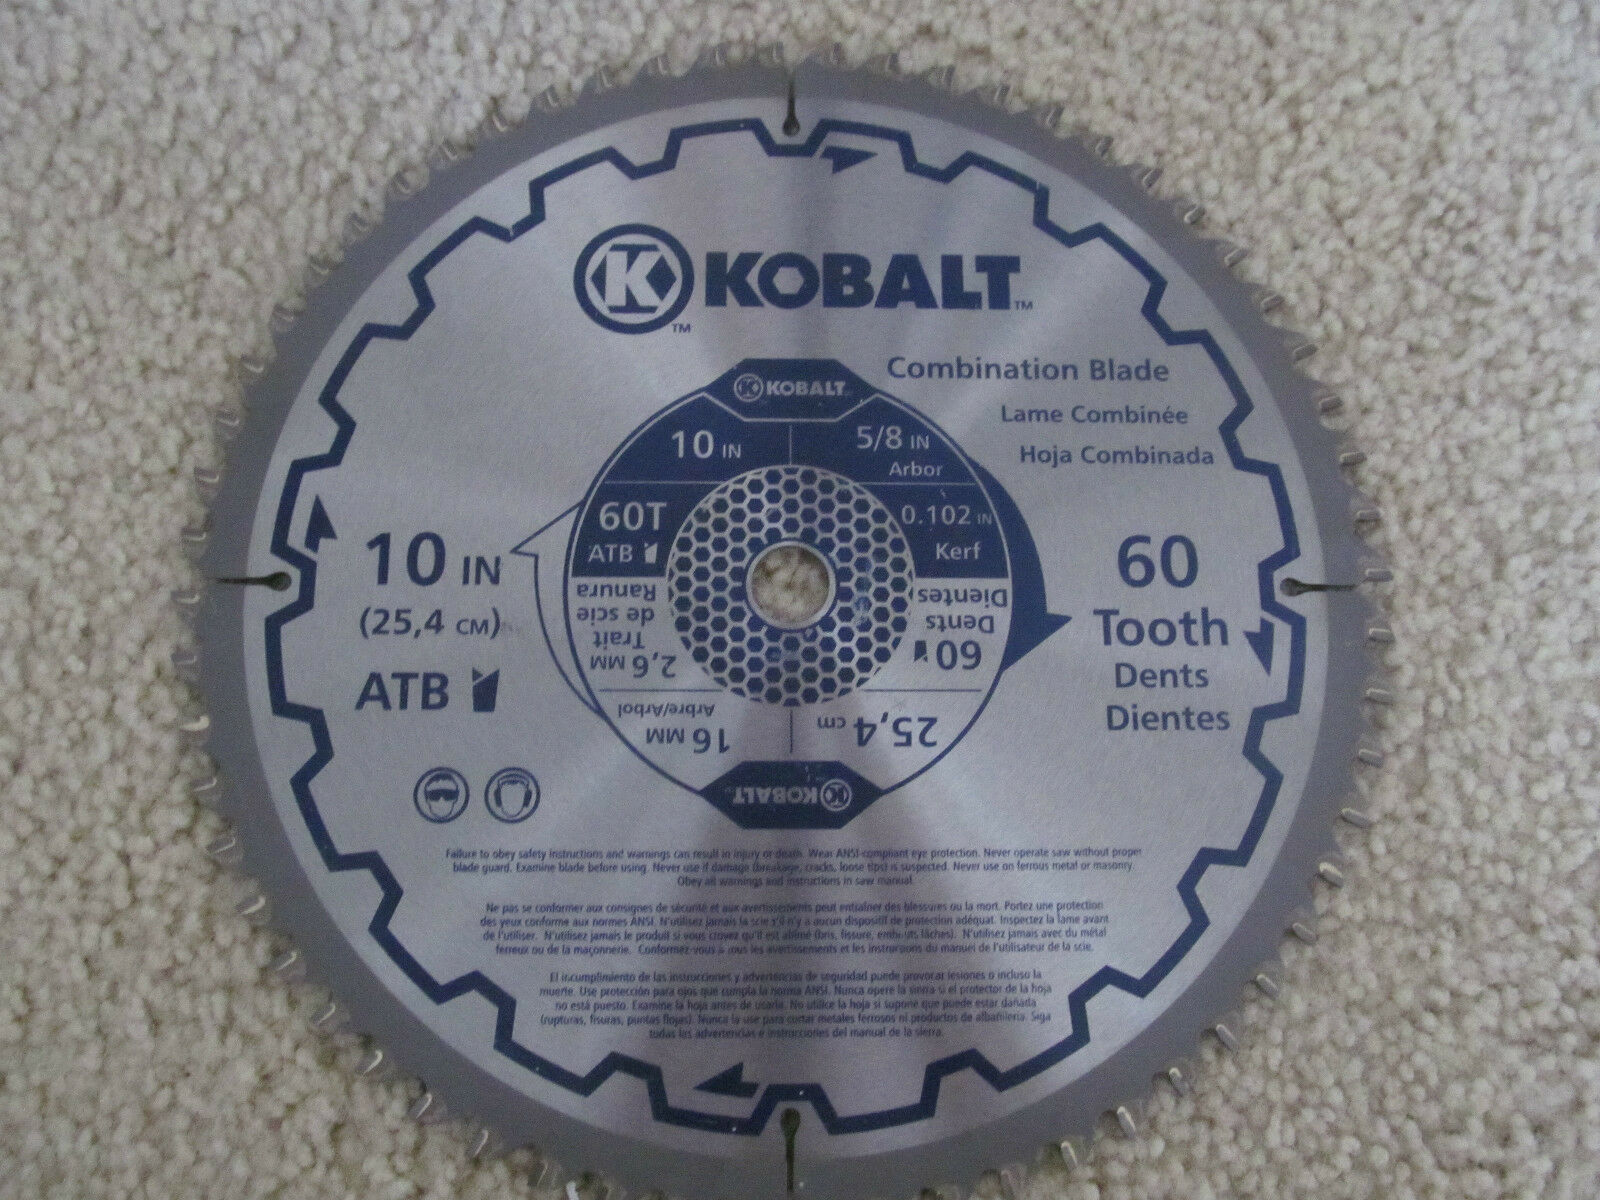 Kobalt Combination Circular Saw Blade 10 inch  60 Tooth Dents  25,4 cm  5 8